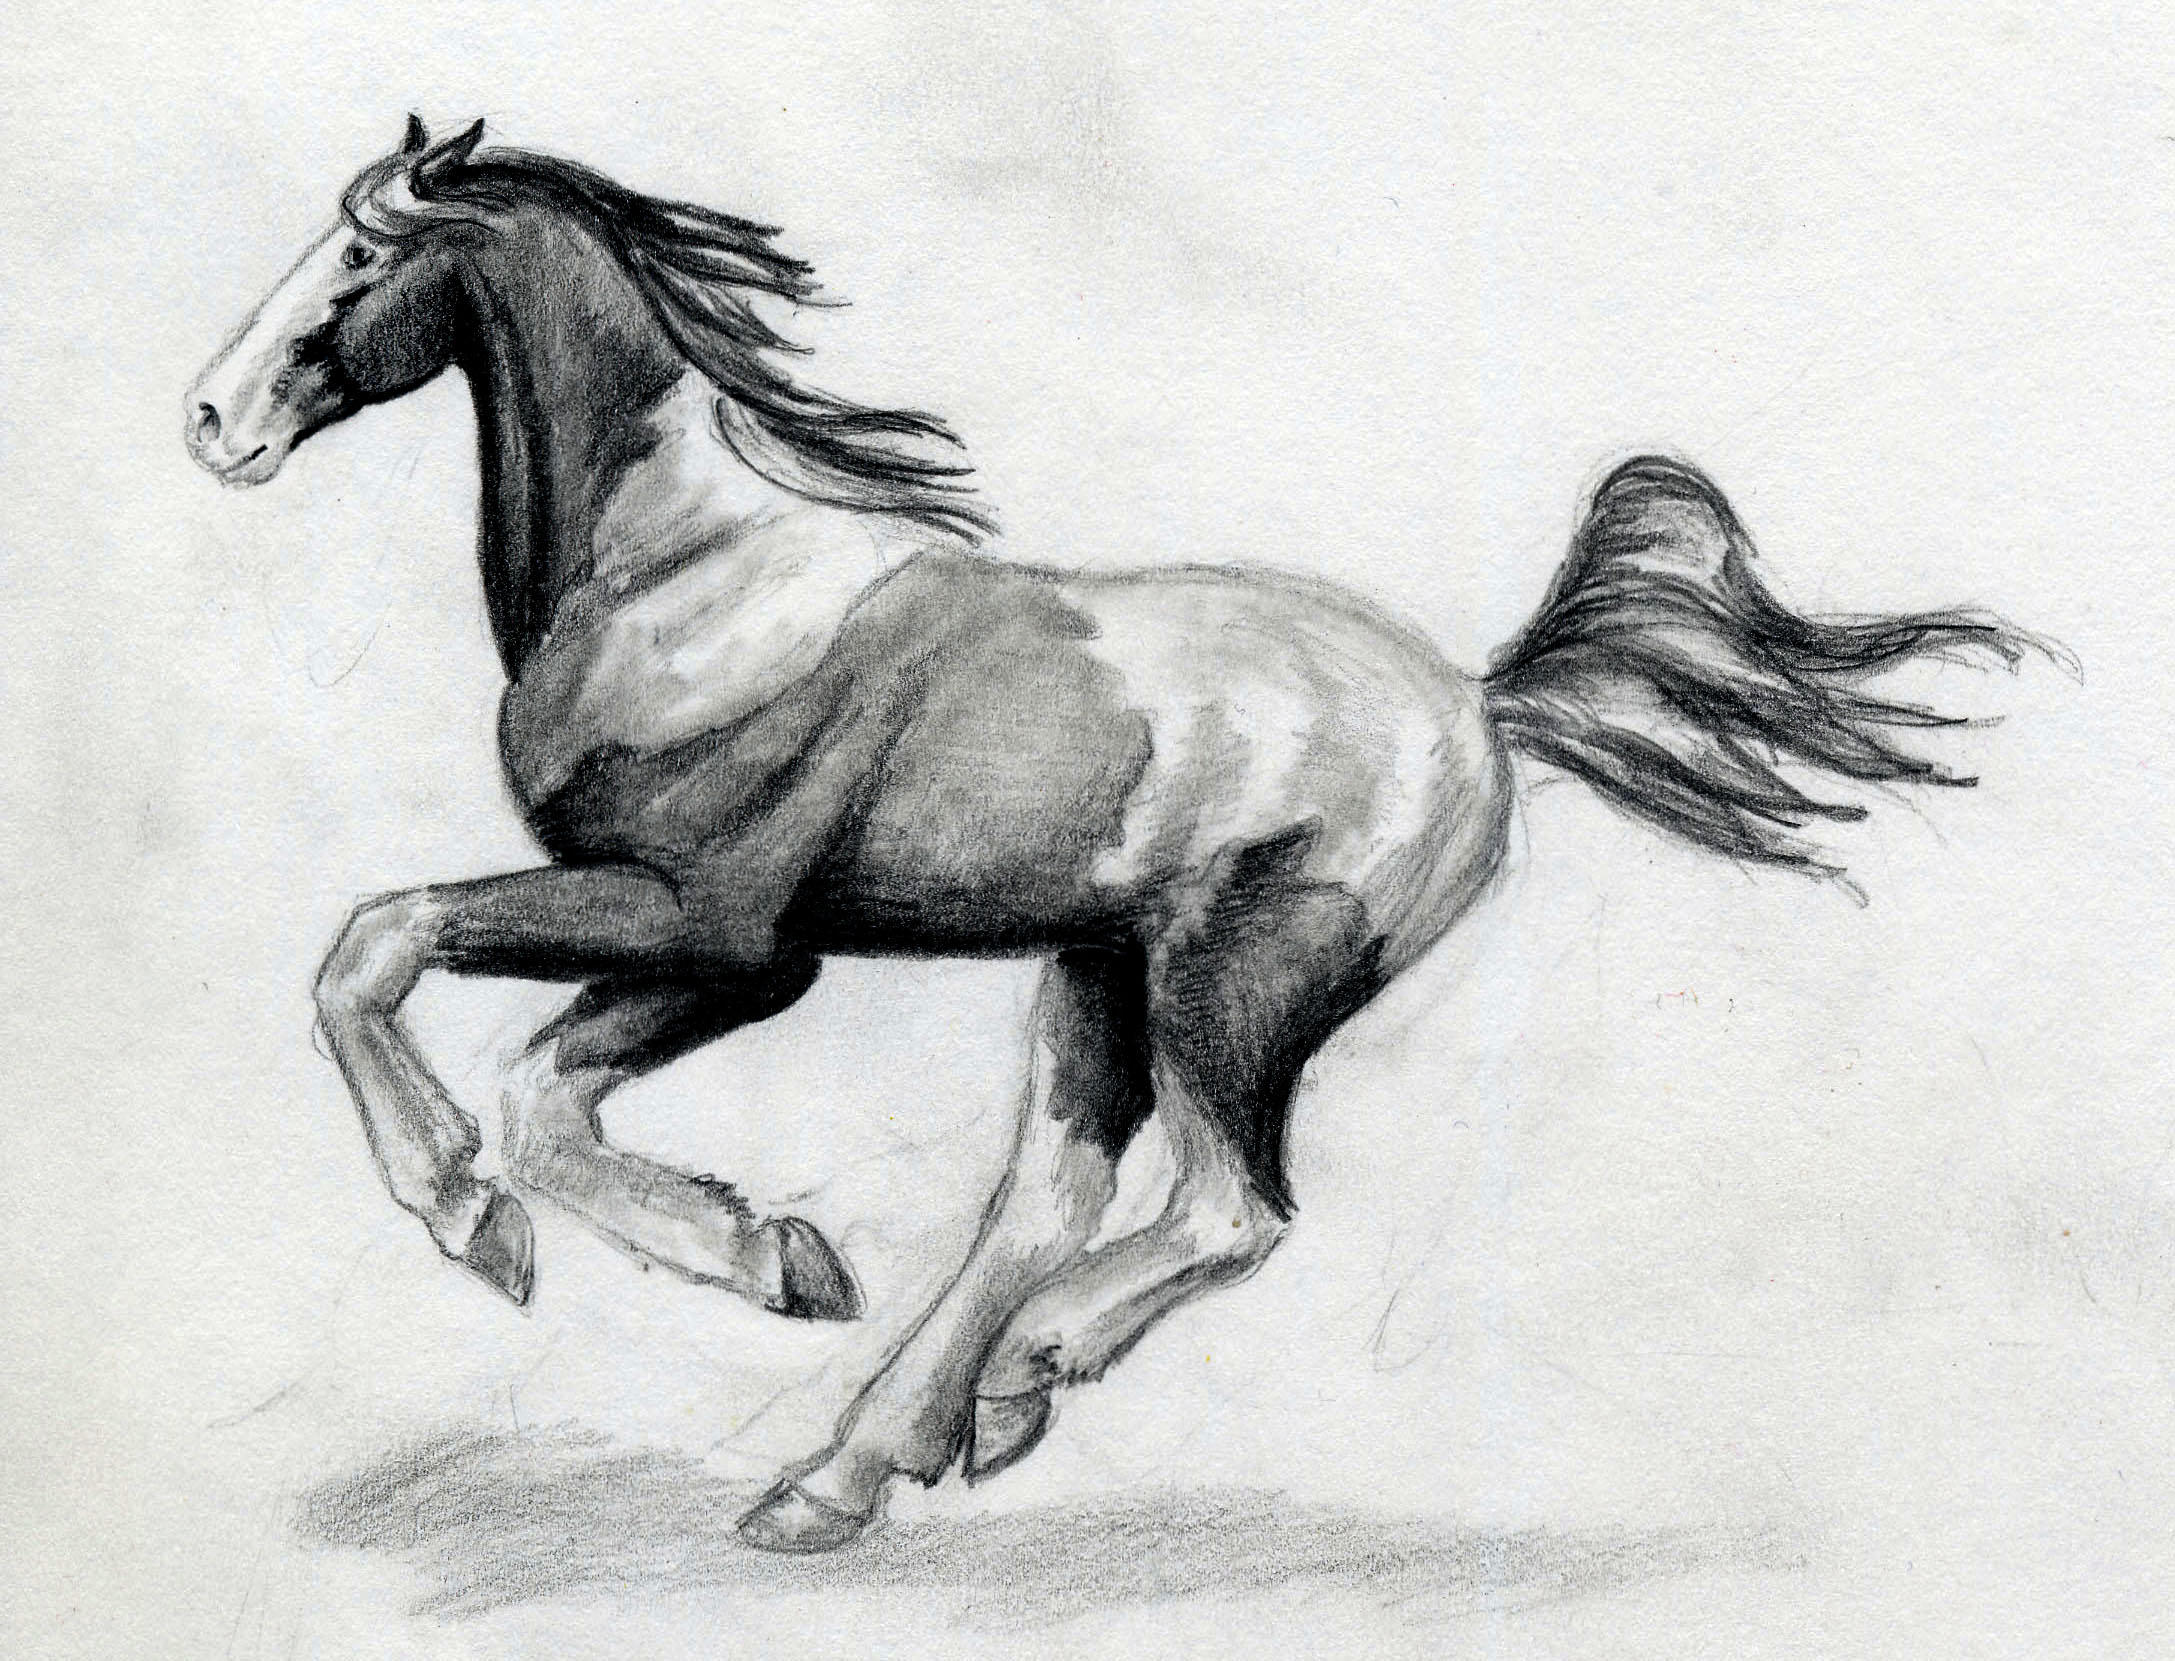 pianted horse running by SpottedPegasus on DeviantArt - photo#14